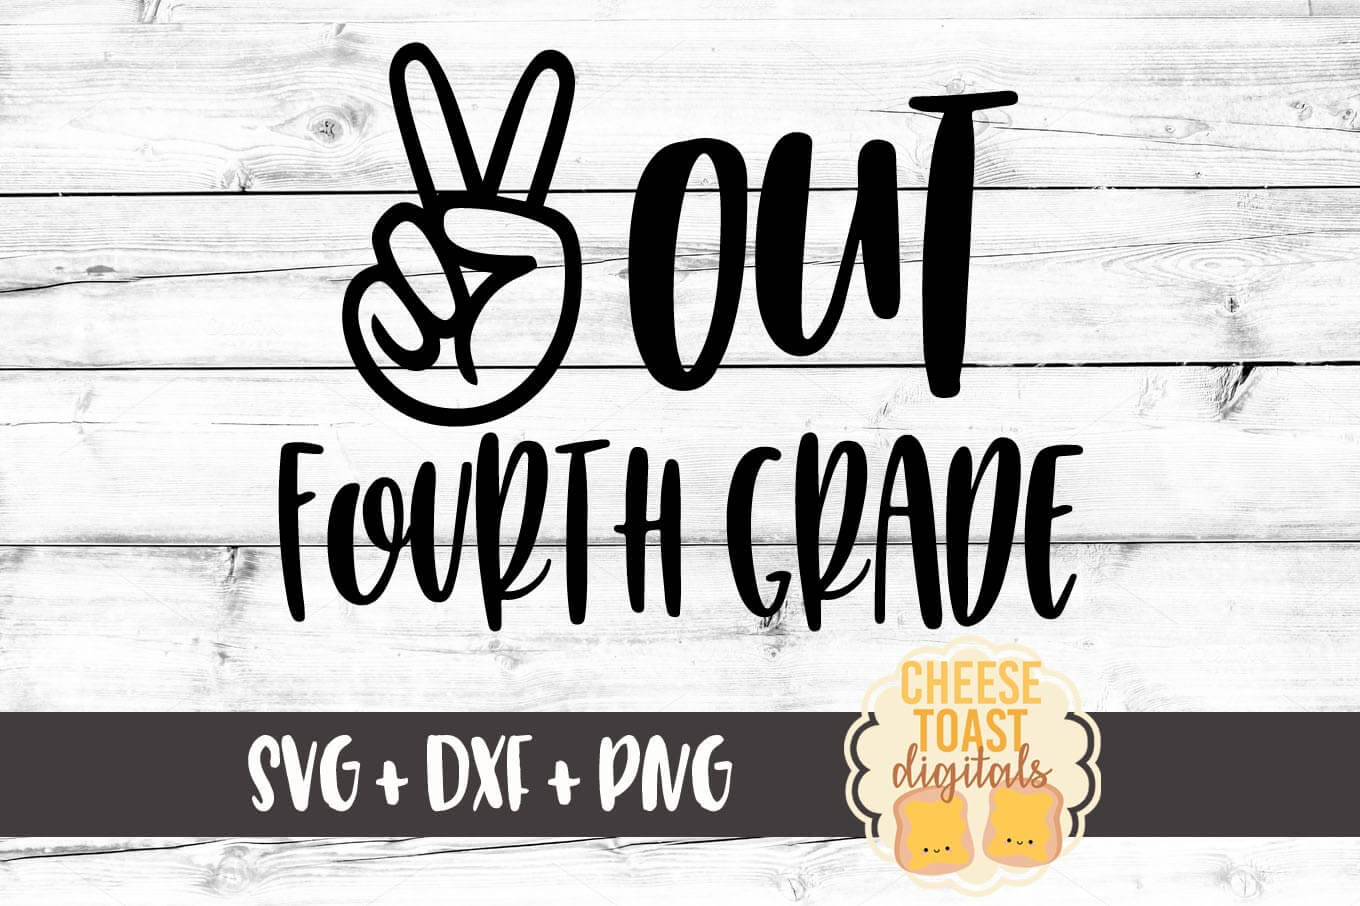 Peace Out Fourth Grade - SVG, PNG, DXF